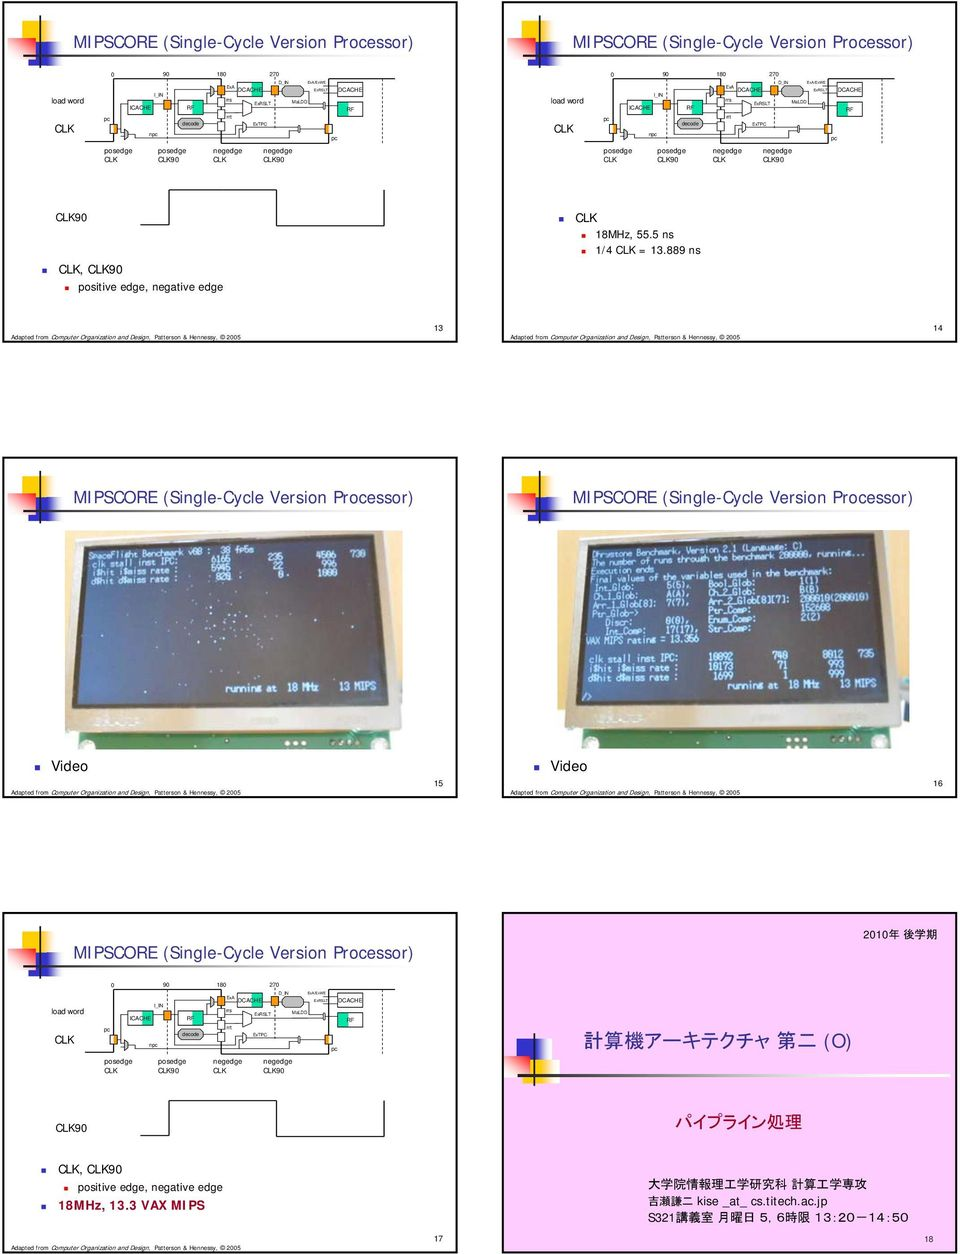 889 ns, 90 positive edge, negative edge 13 14 Video 15 Video 16 2010 年 後 学 期 load word 0 90 180 270 ICACHE n I_IN 90 decode ExA rrs rrt ExTPC